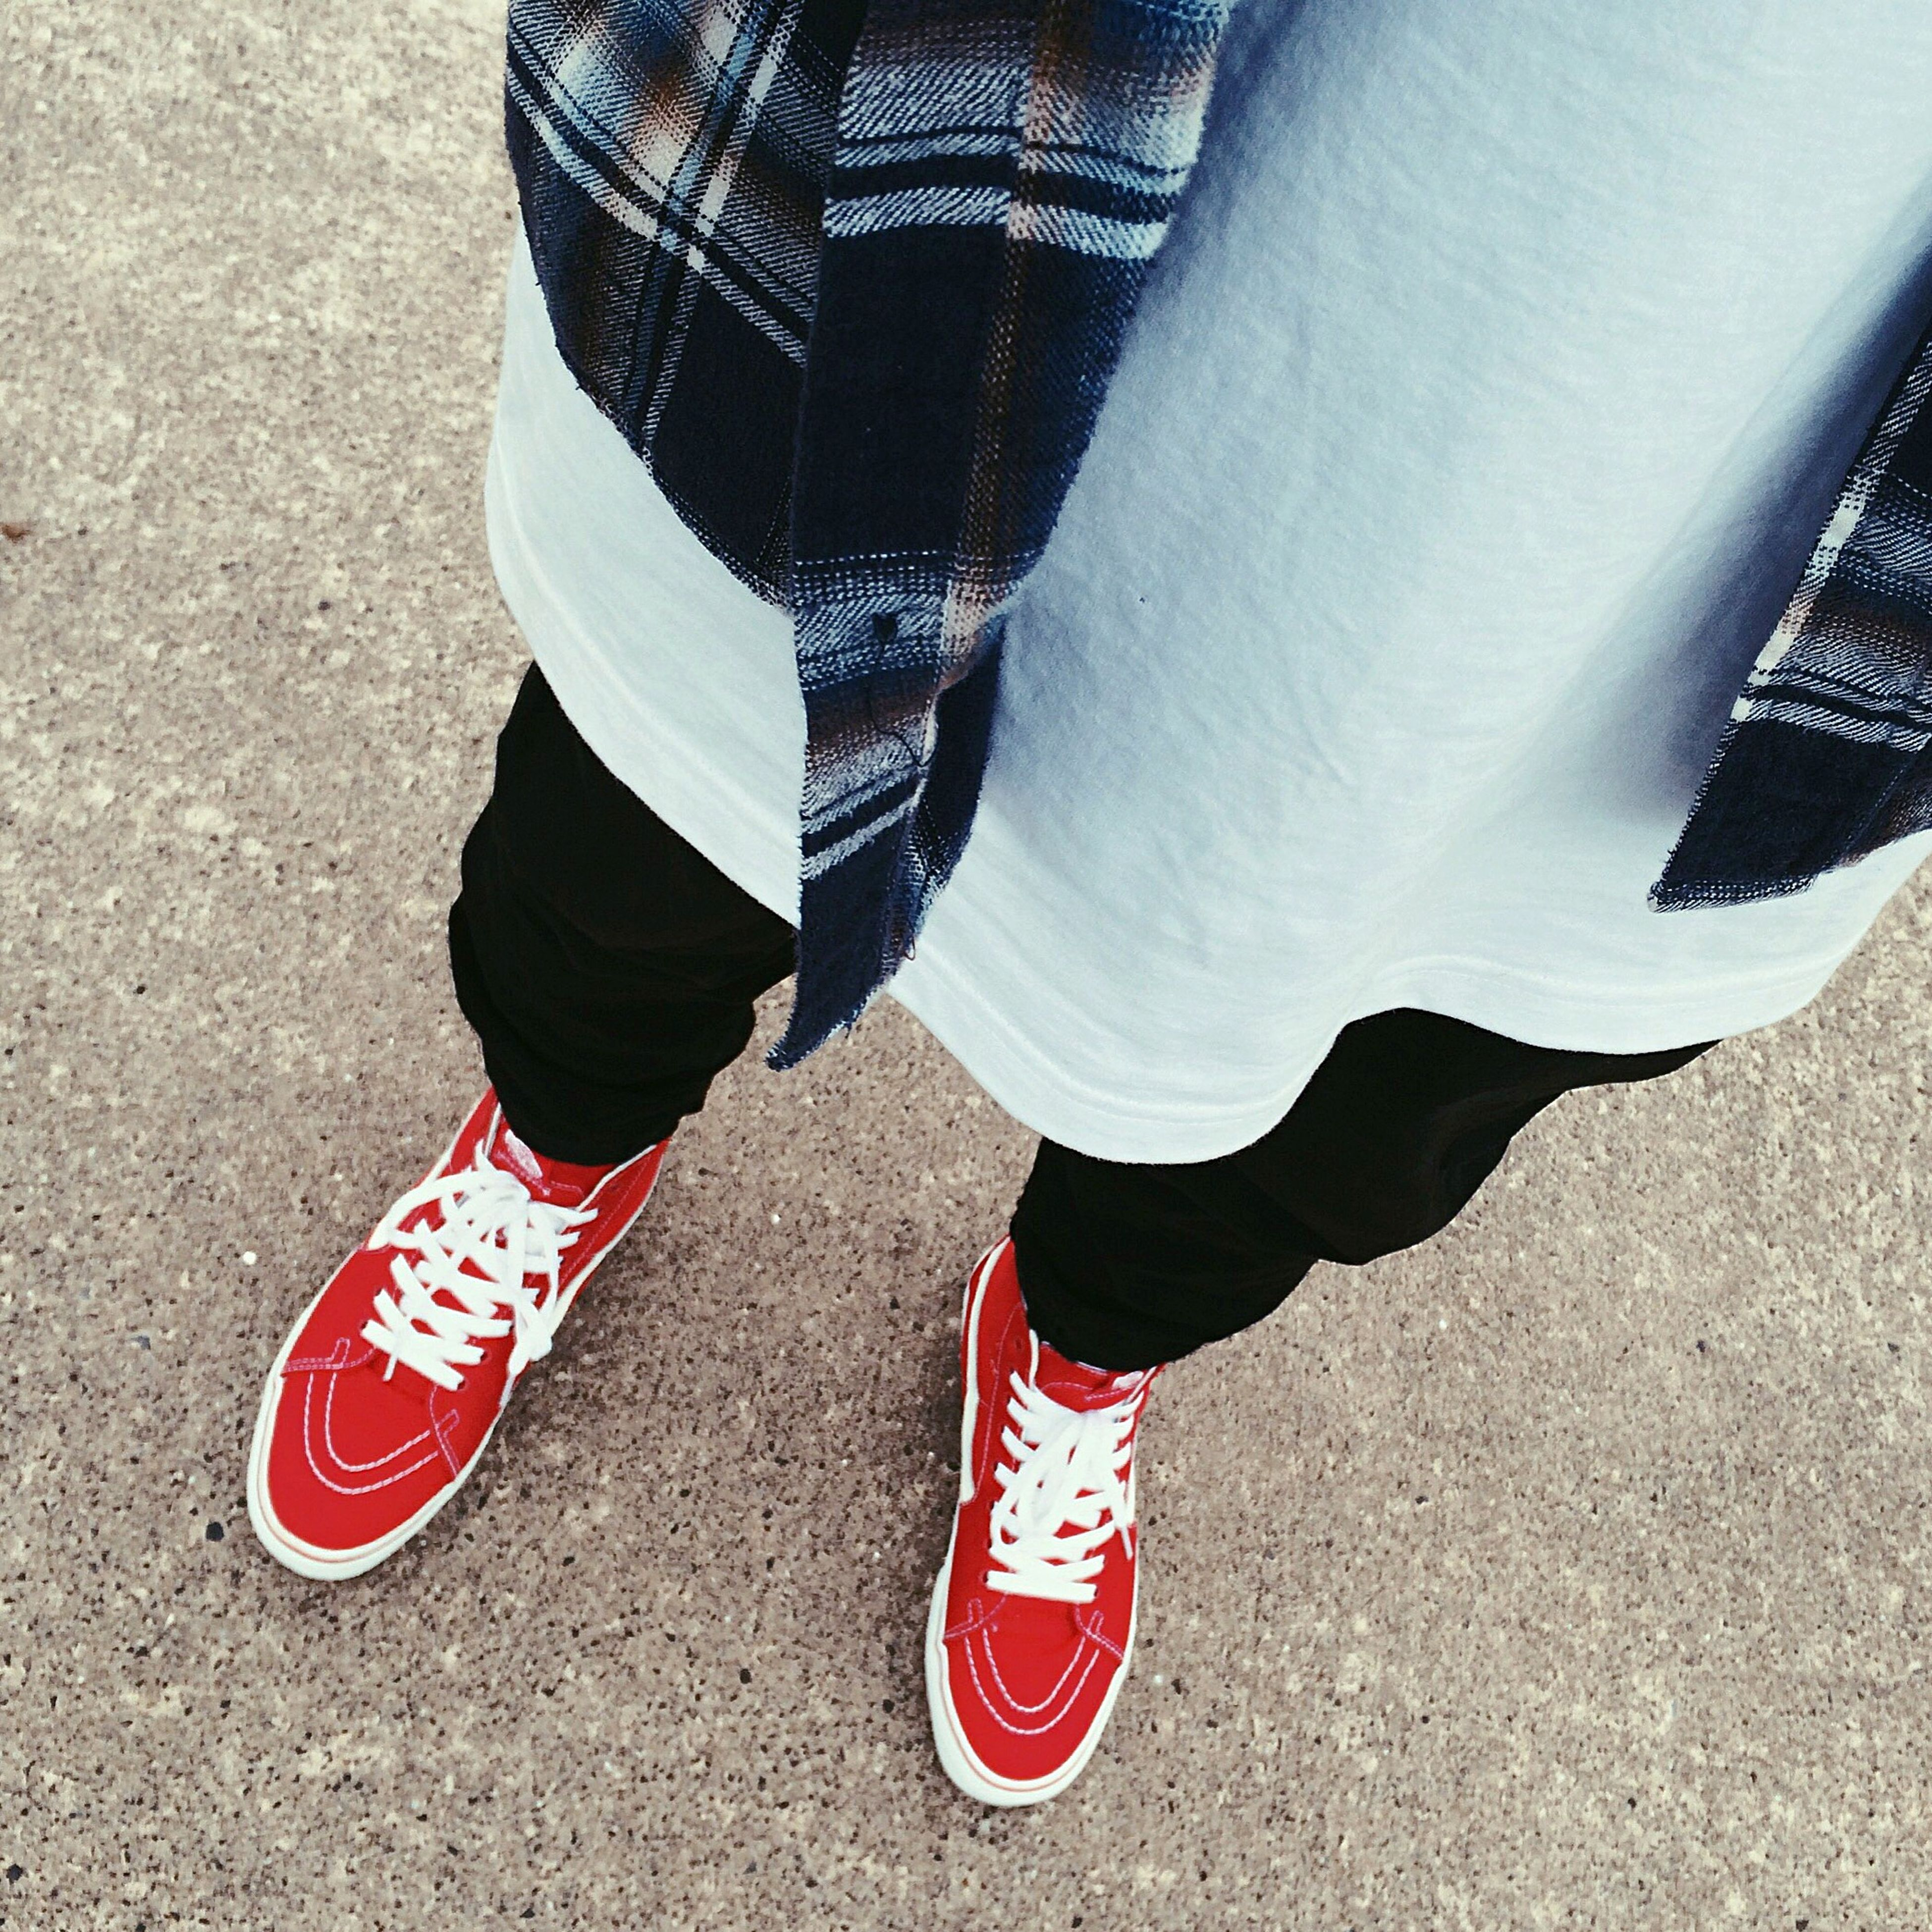 lifestyles, red, leisure activity, casual clothing, striped, footwear, day, outdoors, canvas shoe, ground